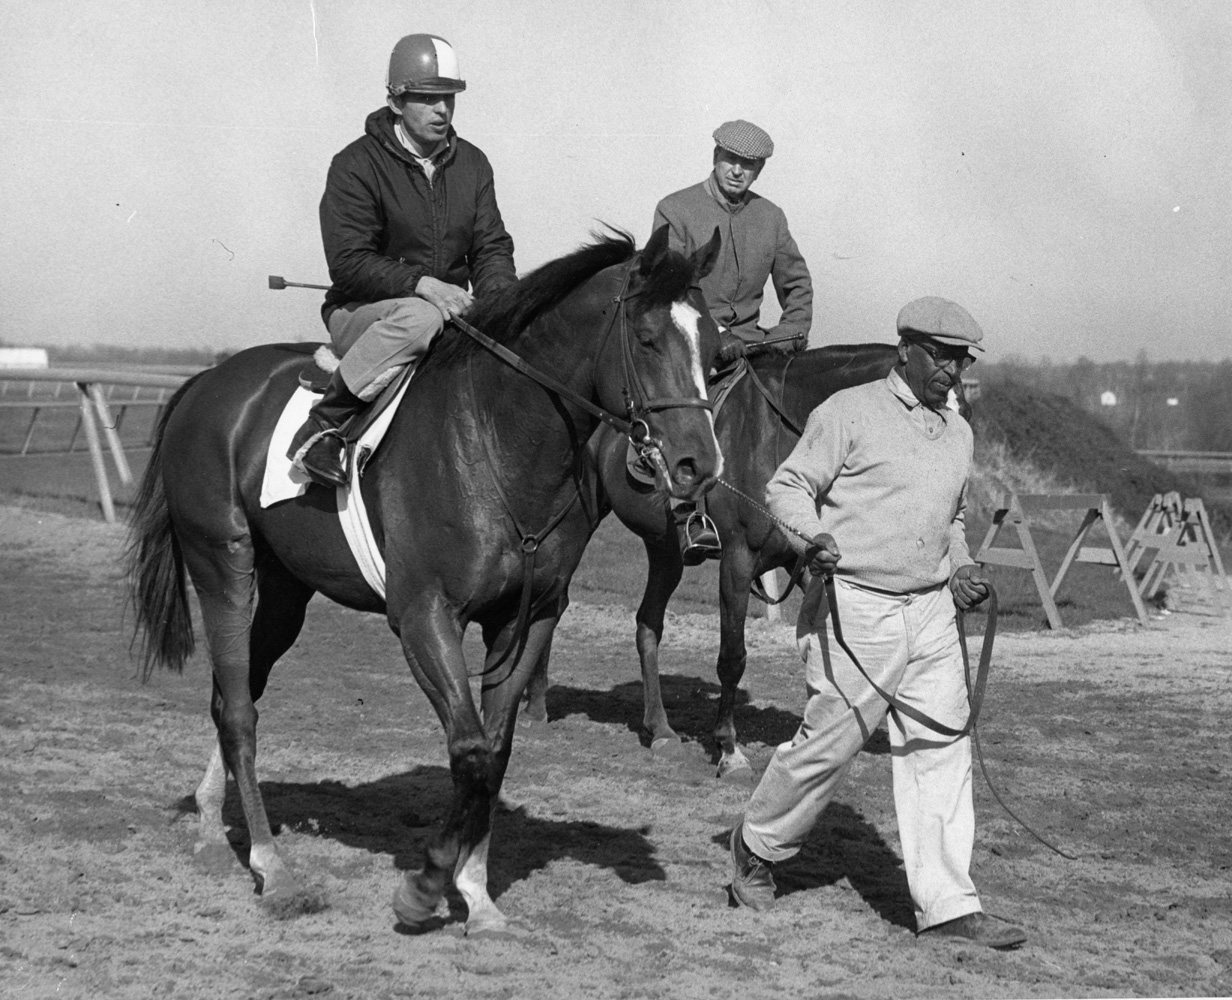 Northern Dancer in training with Hall of Fame trainer Horatio Luro on the pony nearby, April 1964 (Museum Collection)